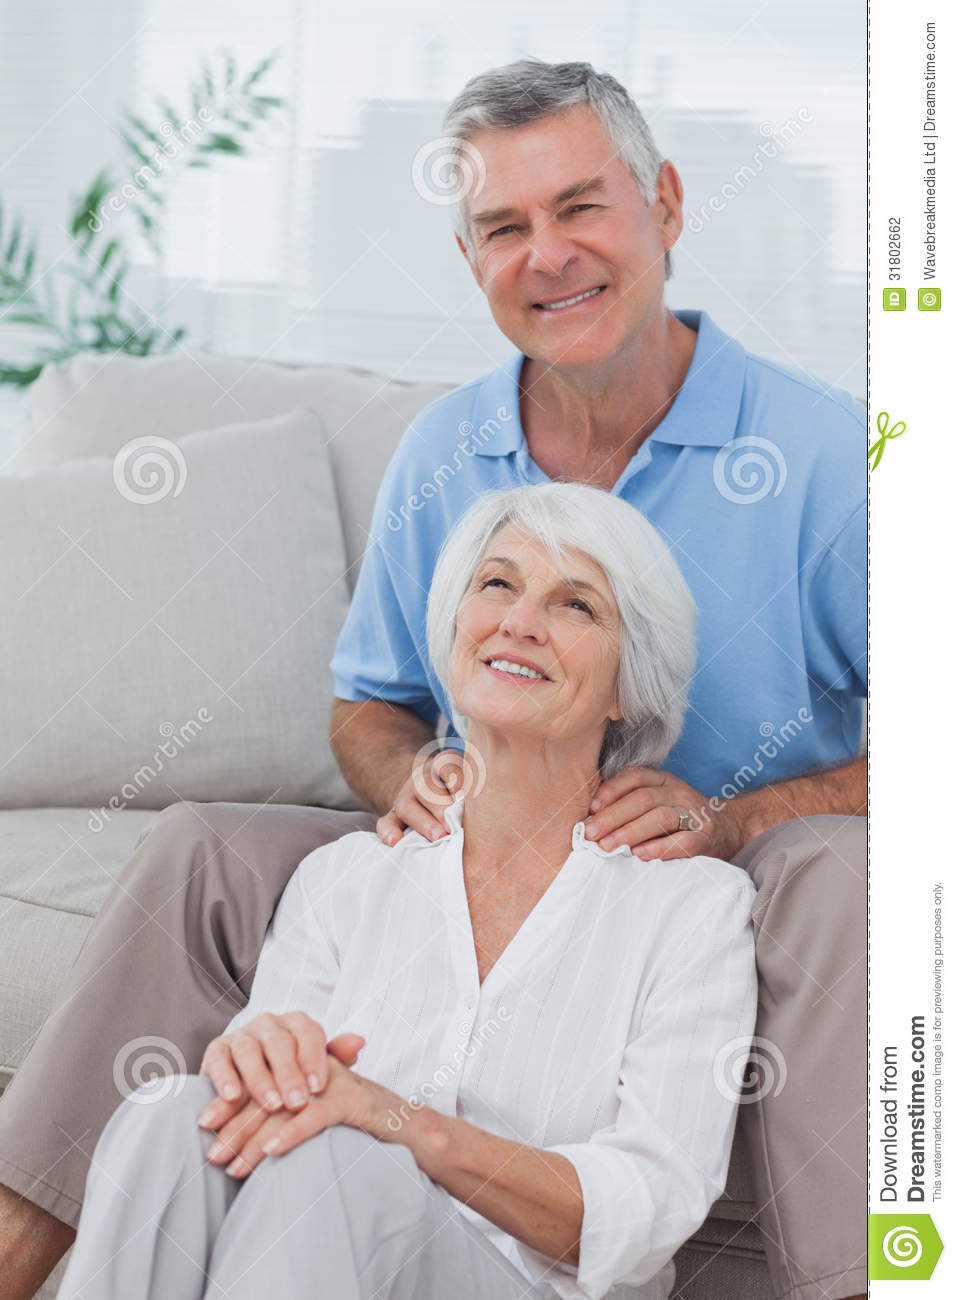 Mature men giving shoulder massage to wife